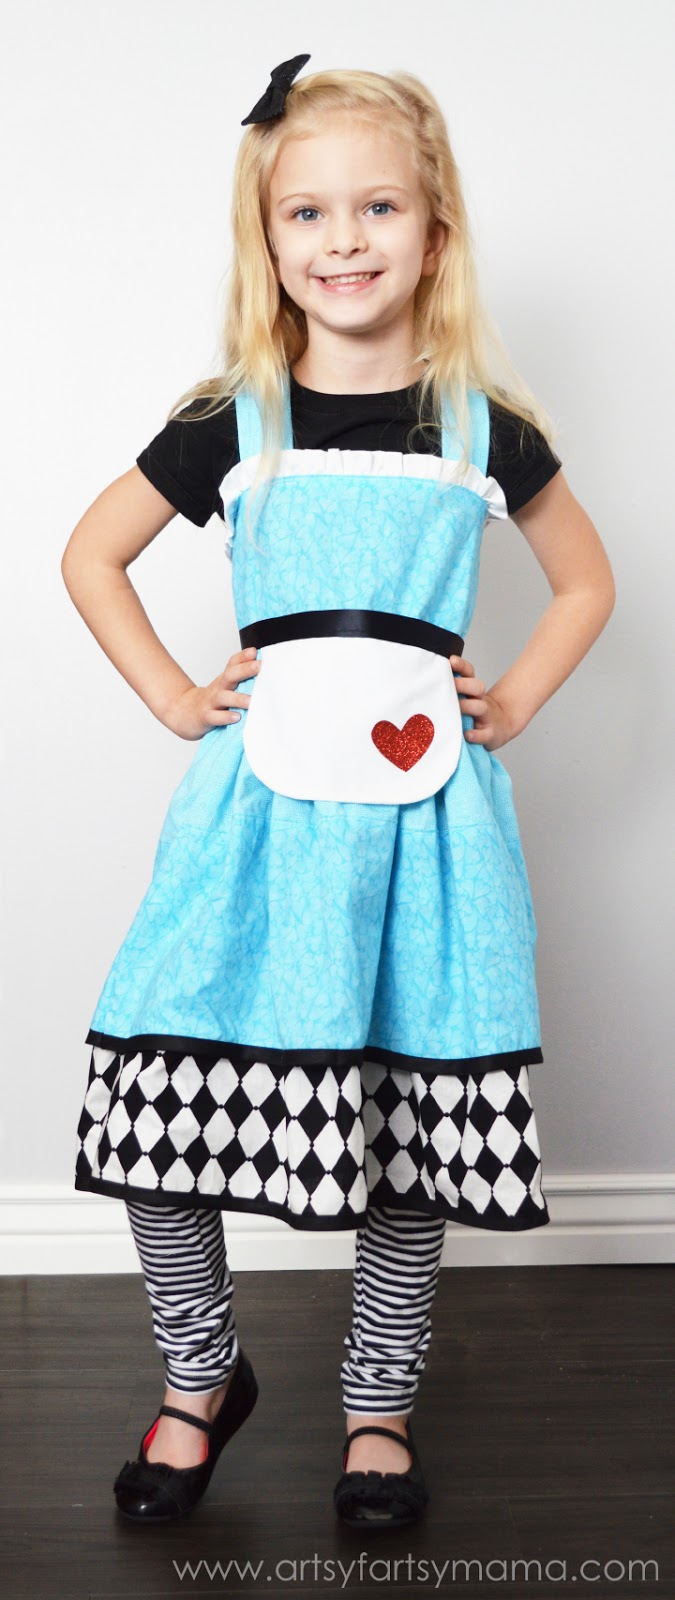 Alice in Wonderland Costume at artsyfartsymama.com #Halloween